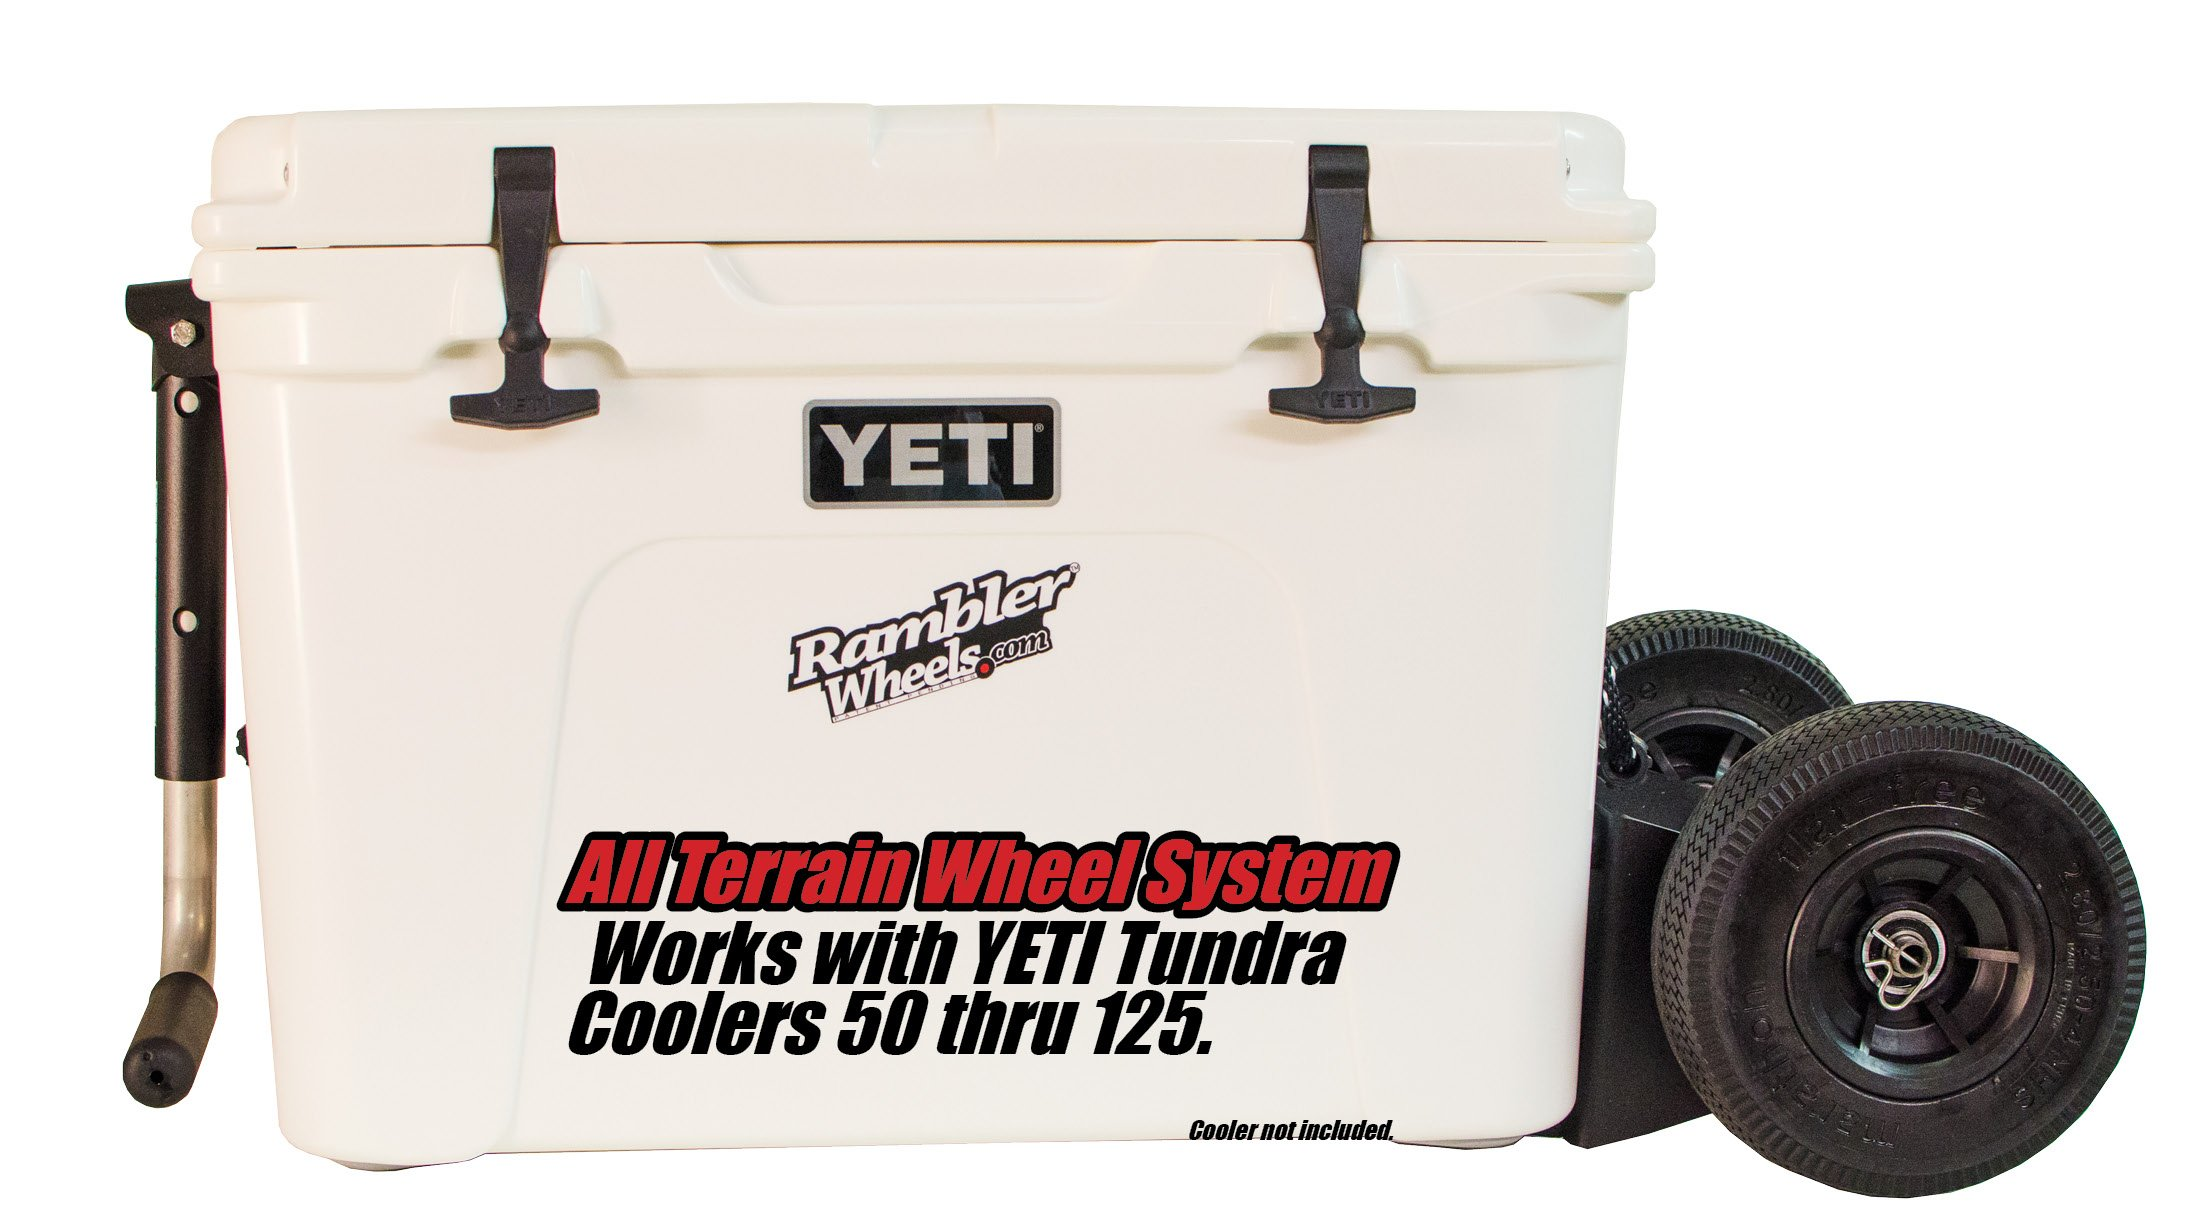 All Terrain Wheel System for YETI Cooler - The Rambler X2 by Rambler